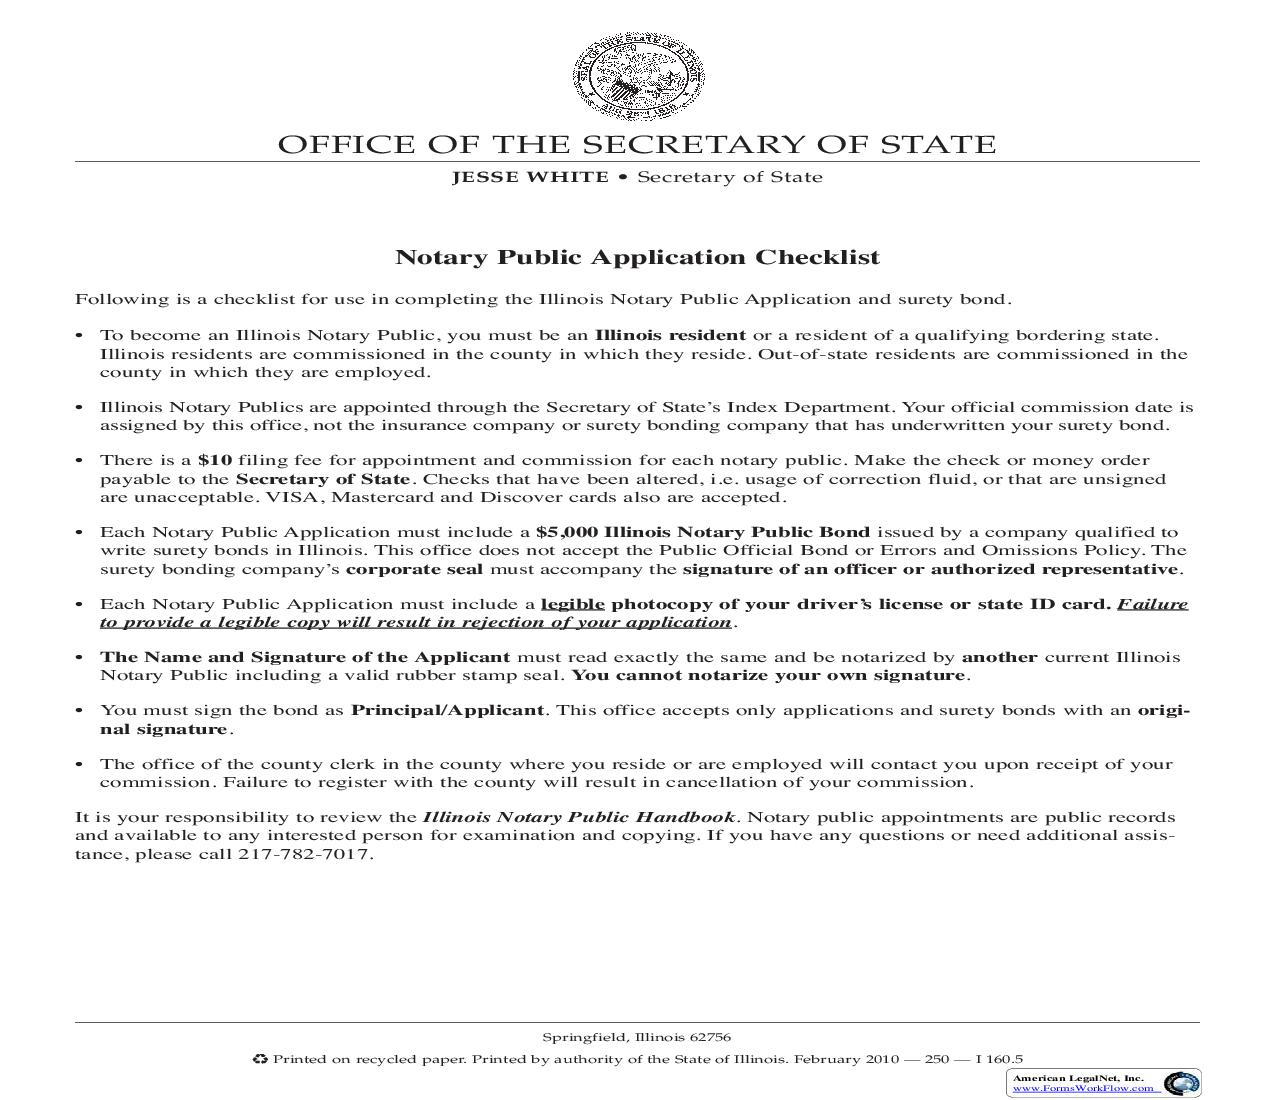 Notary Public Application Checklist And Credit Card Transaction Form | Pdf Fpdf Doc Docx | Illinois